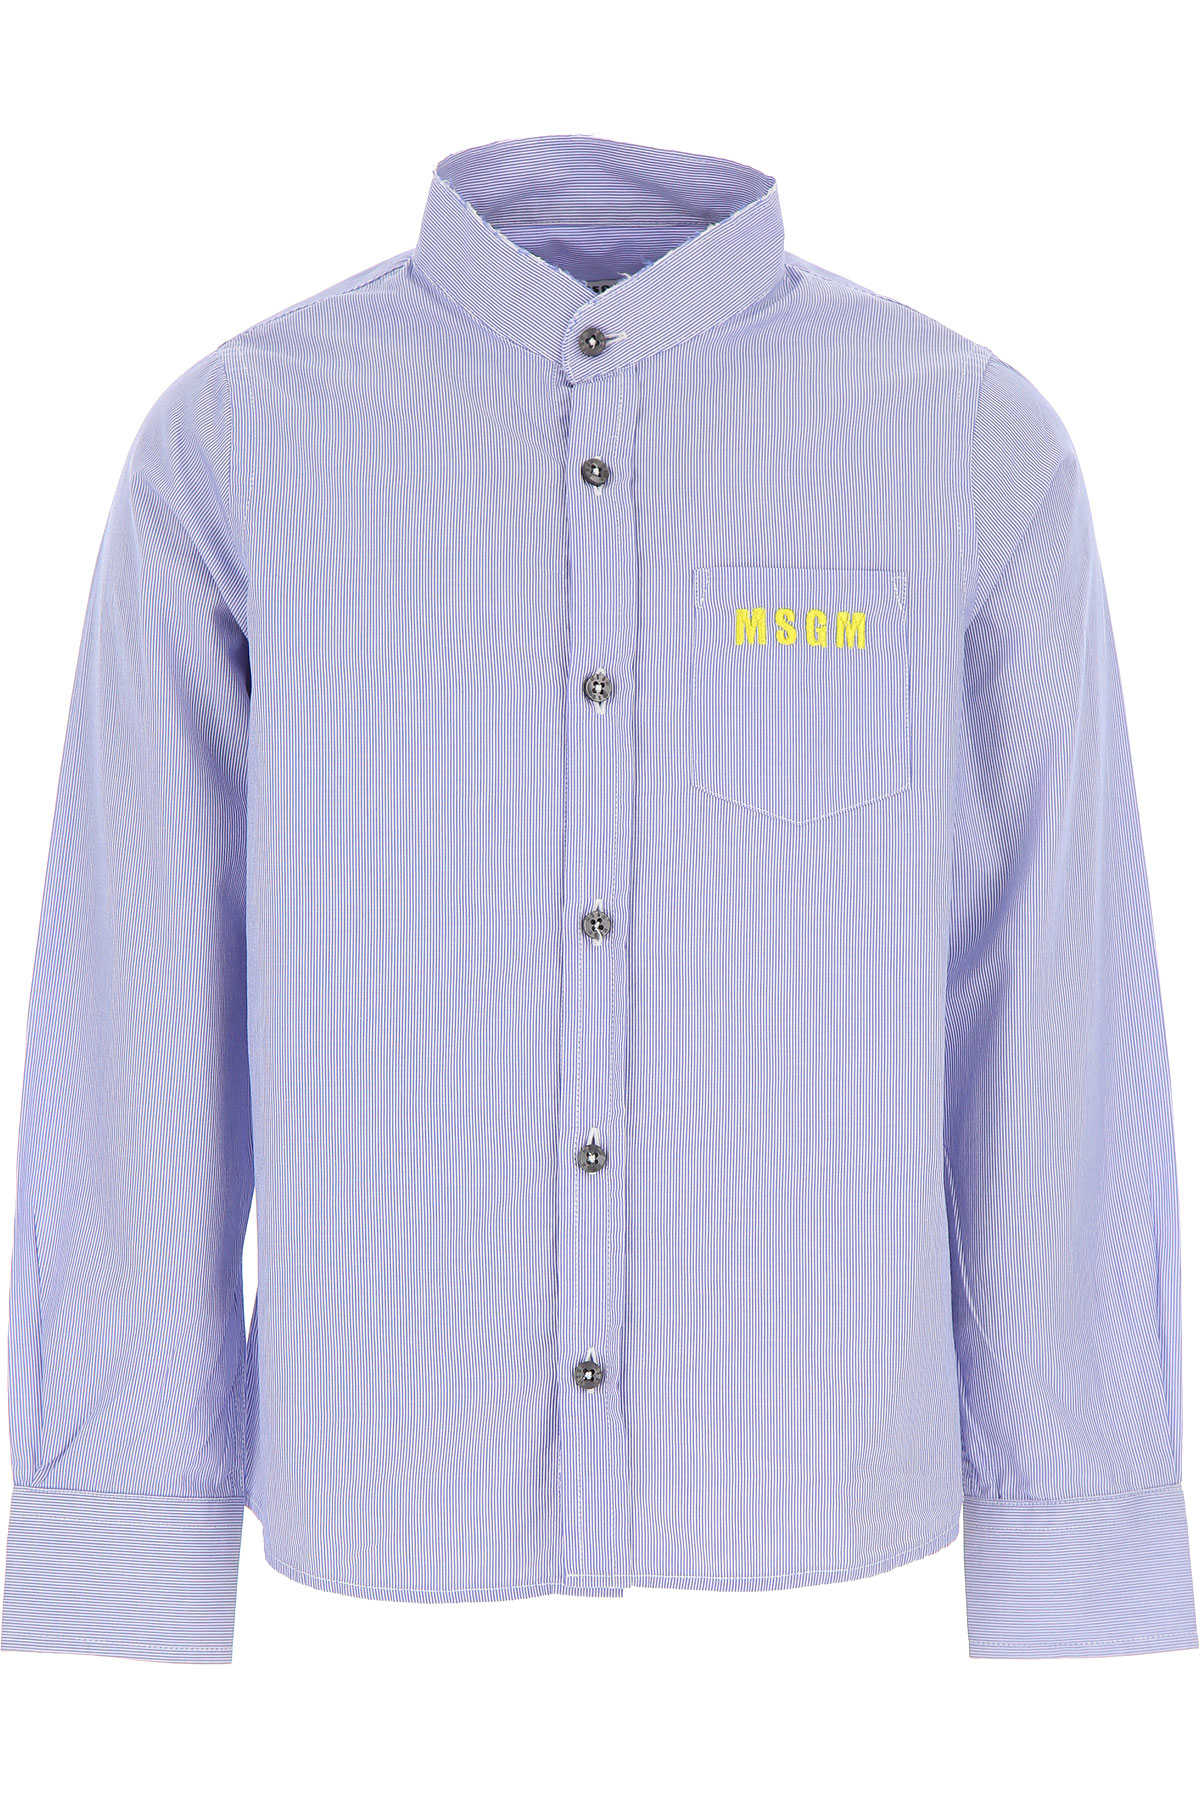 MSGM Kids Shirts for Boys On Sale in Outlet Blue SE - GOOFASH